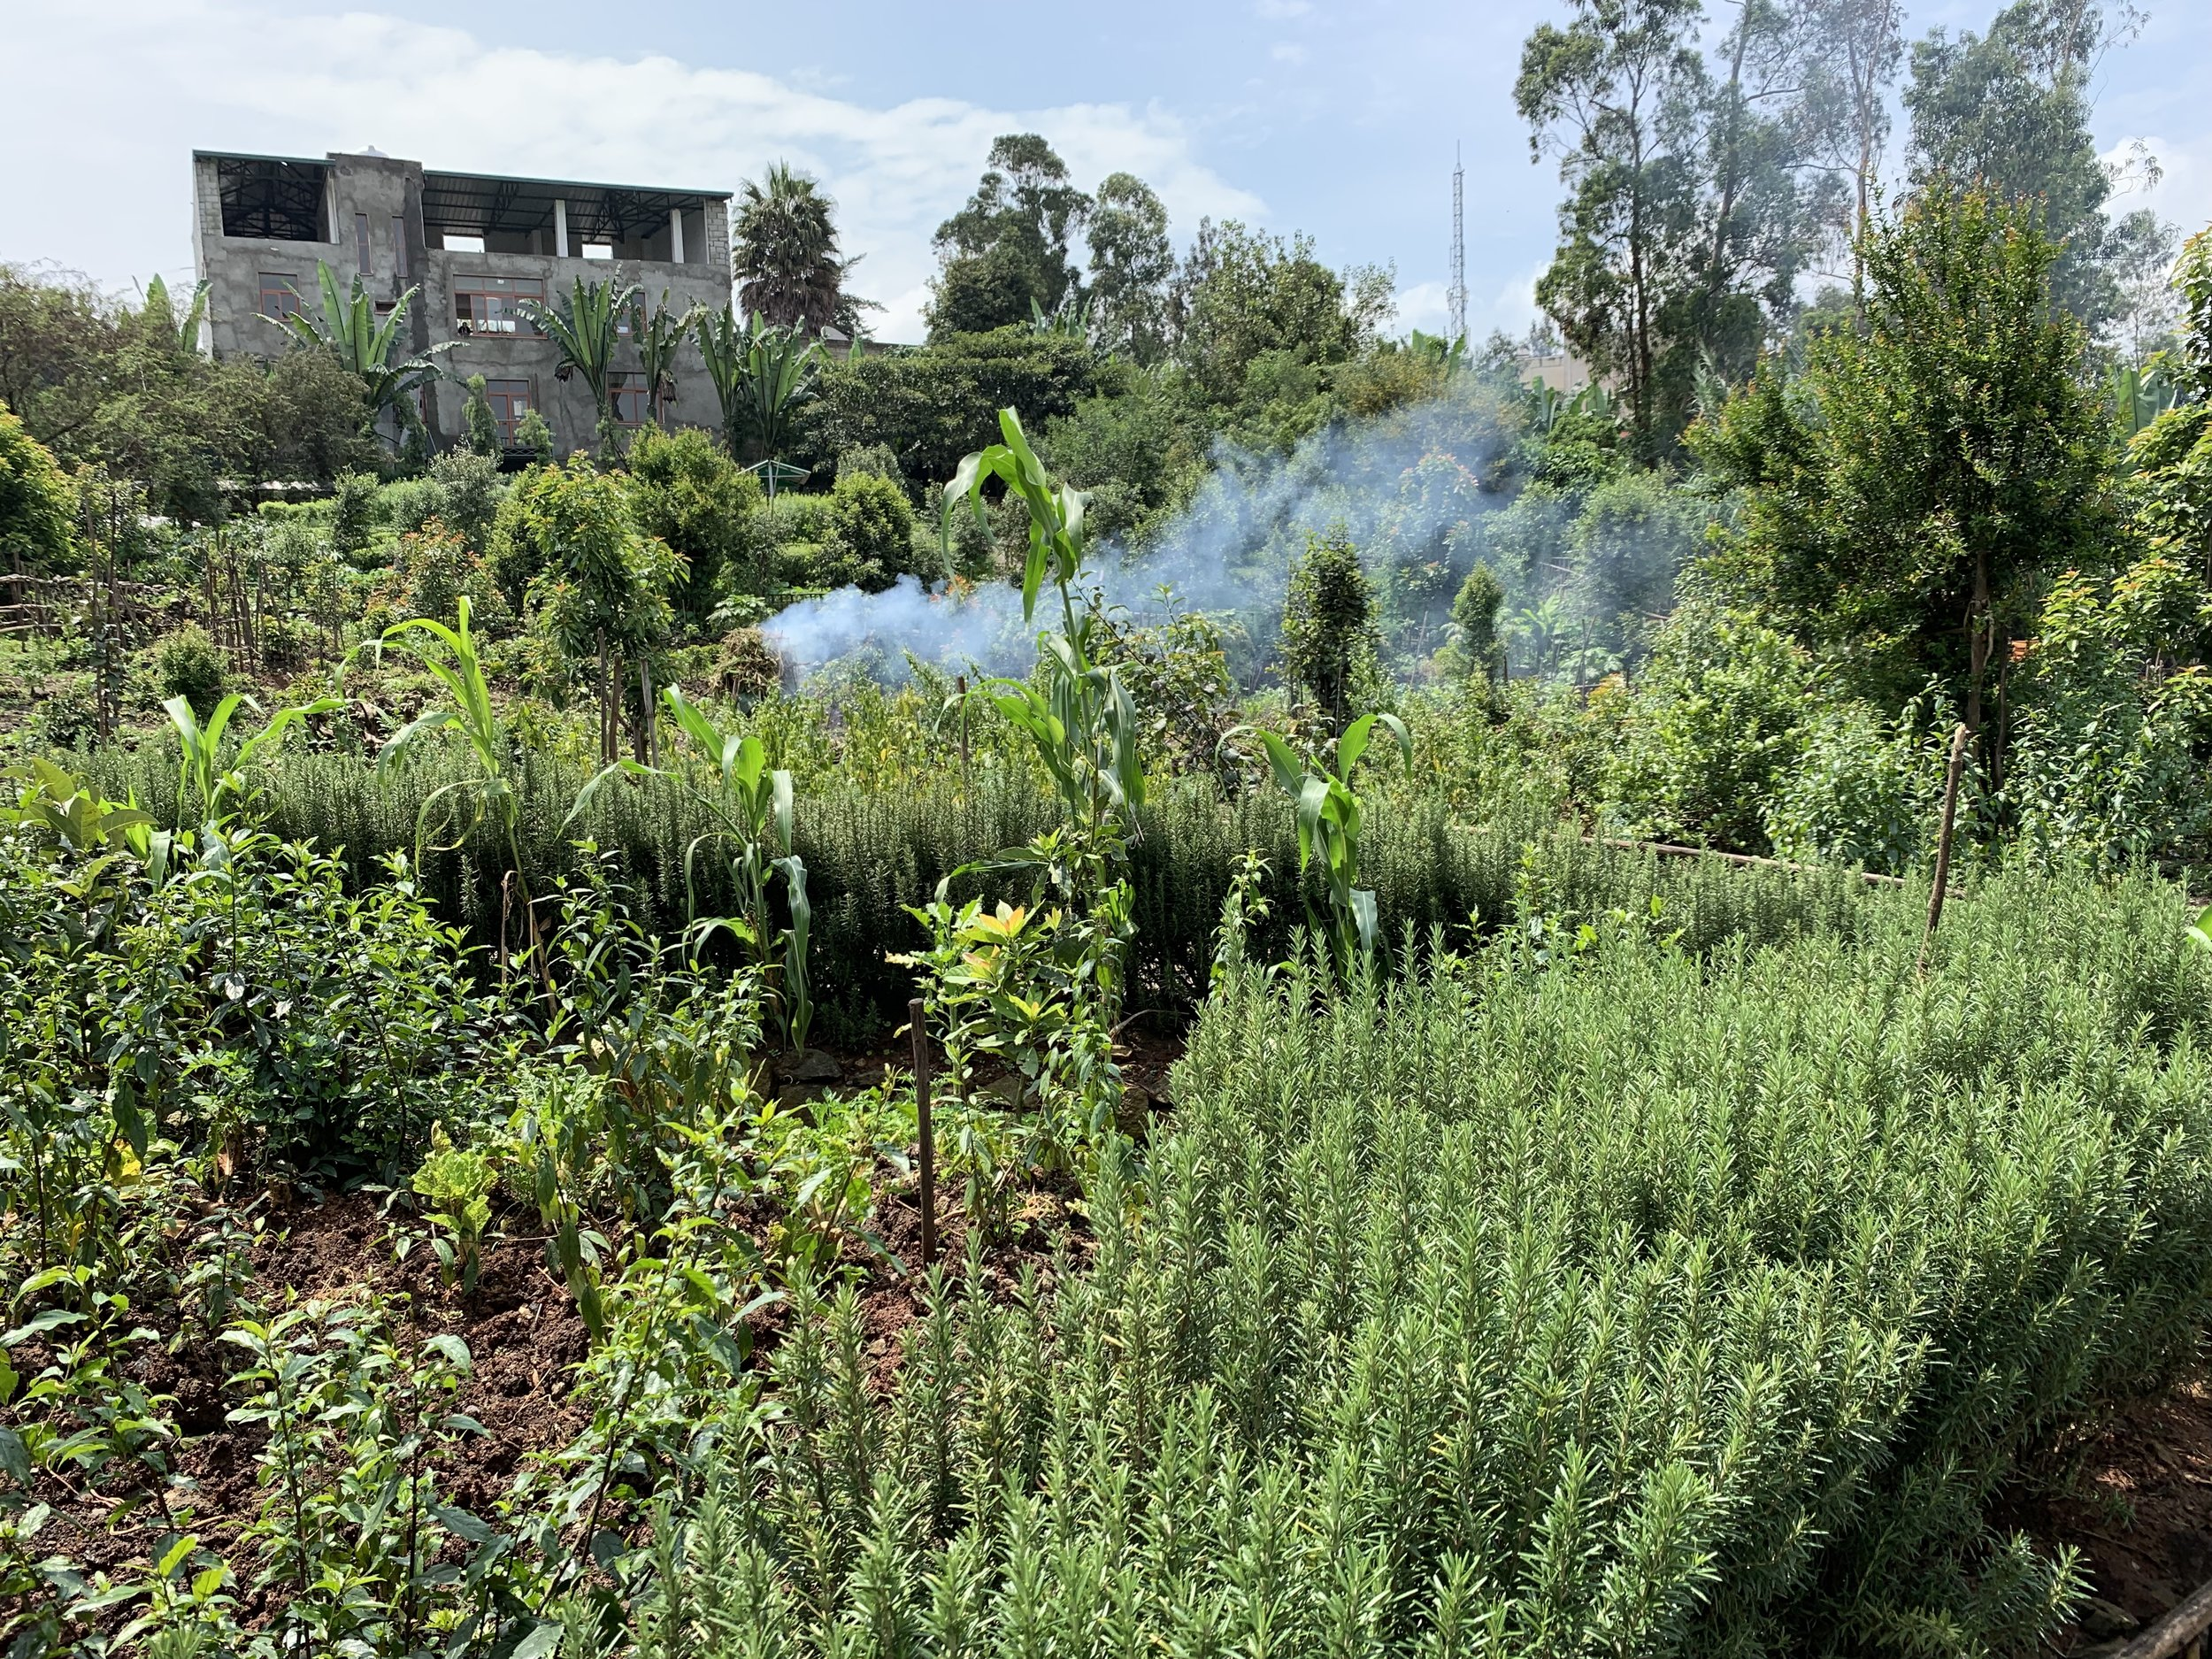 The gardens at Zoma on a reclaimed area. Natural beauty in every direction.